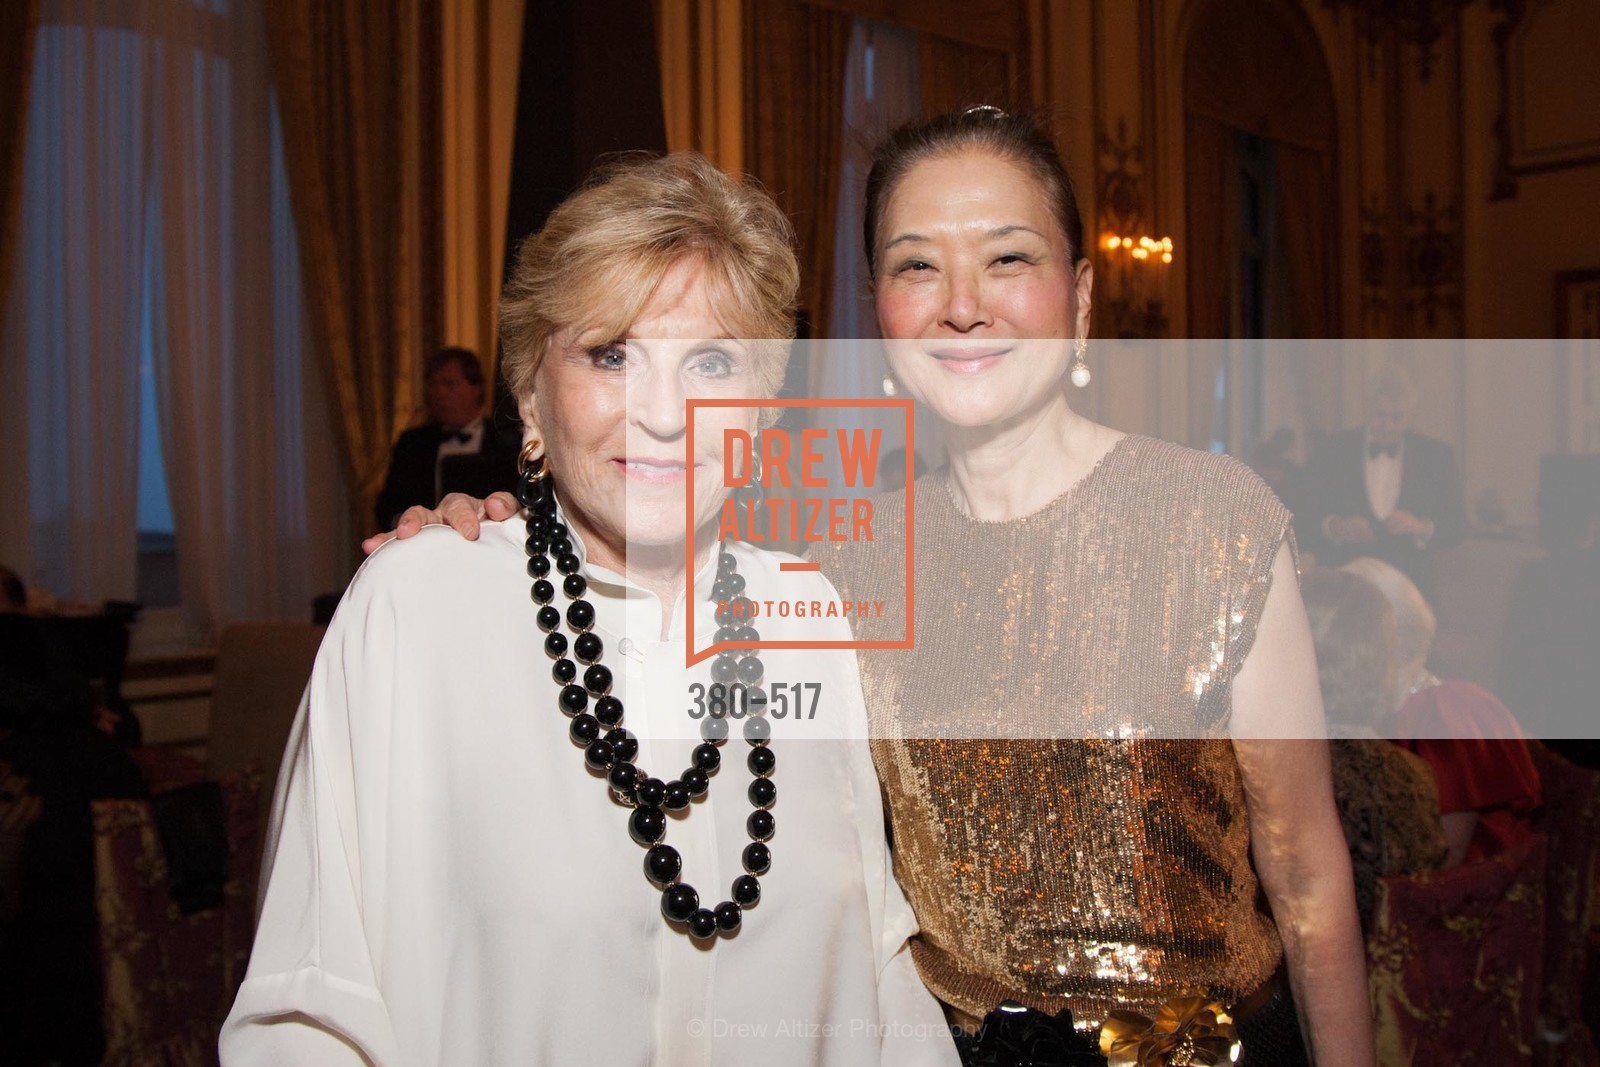 Lois Lehrman, Olivia Decker, SAN FRANCISCO OPERA GUILD Presents POPera, US. US, April 10th, 2014,Drew Altizer, Drew Altizer Photography, full-service agency, private events, San Francisco photographer, photographer california